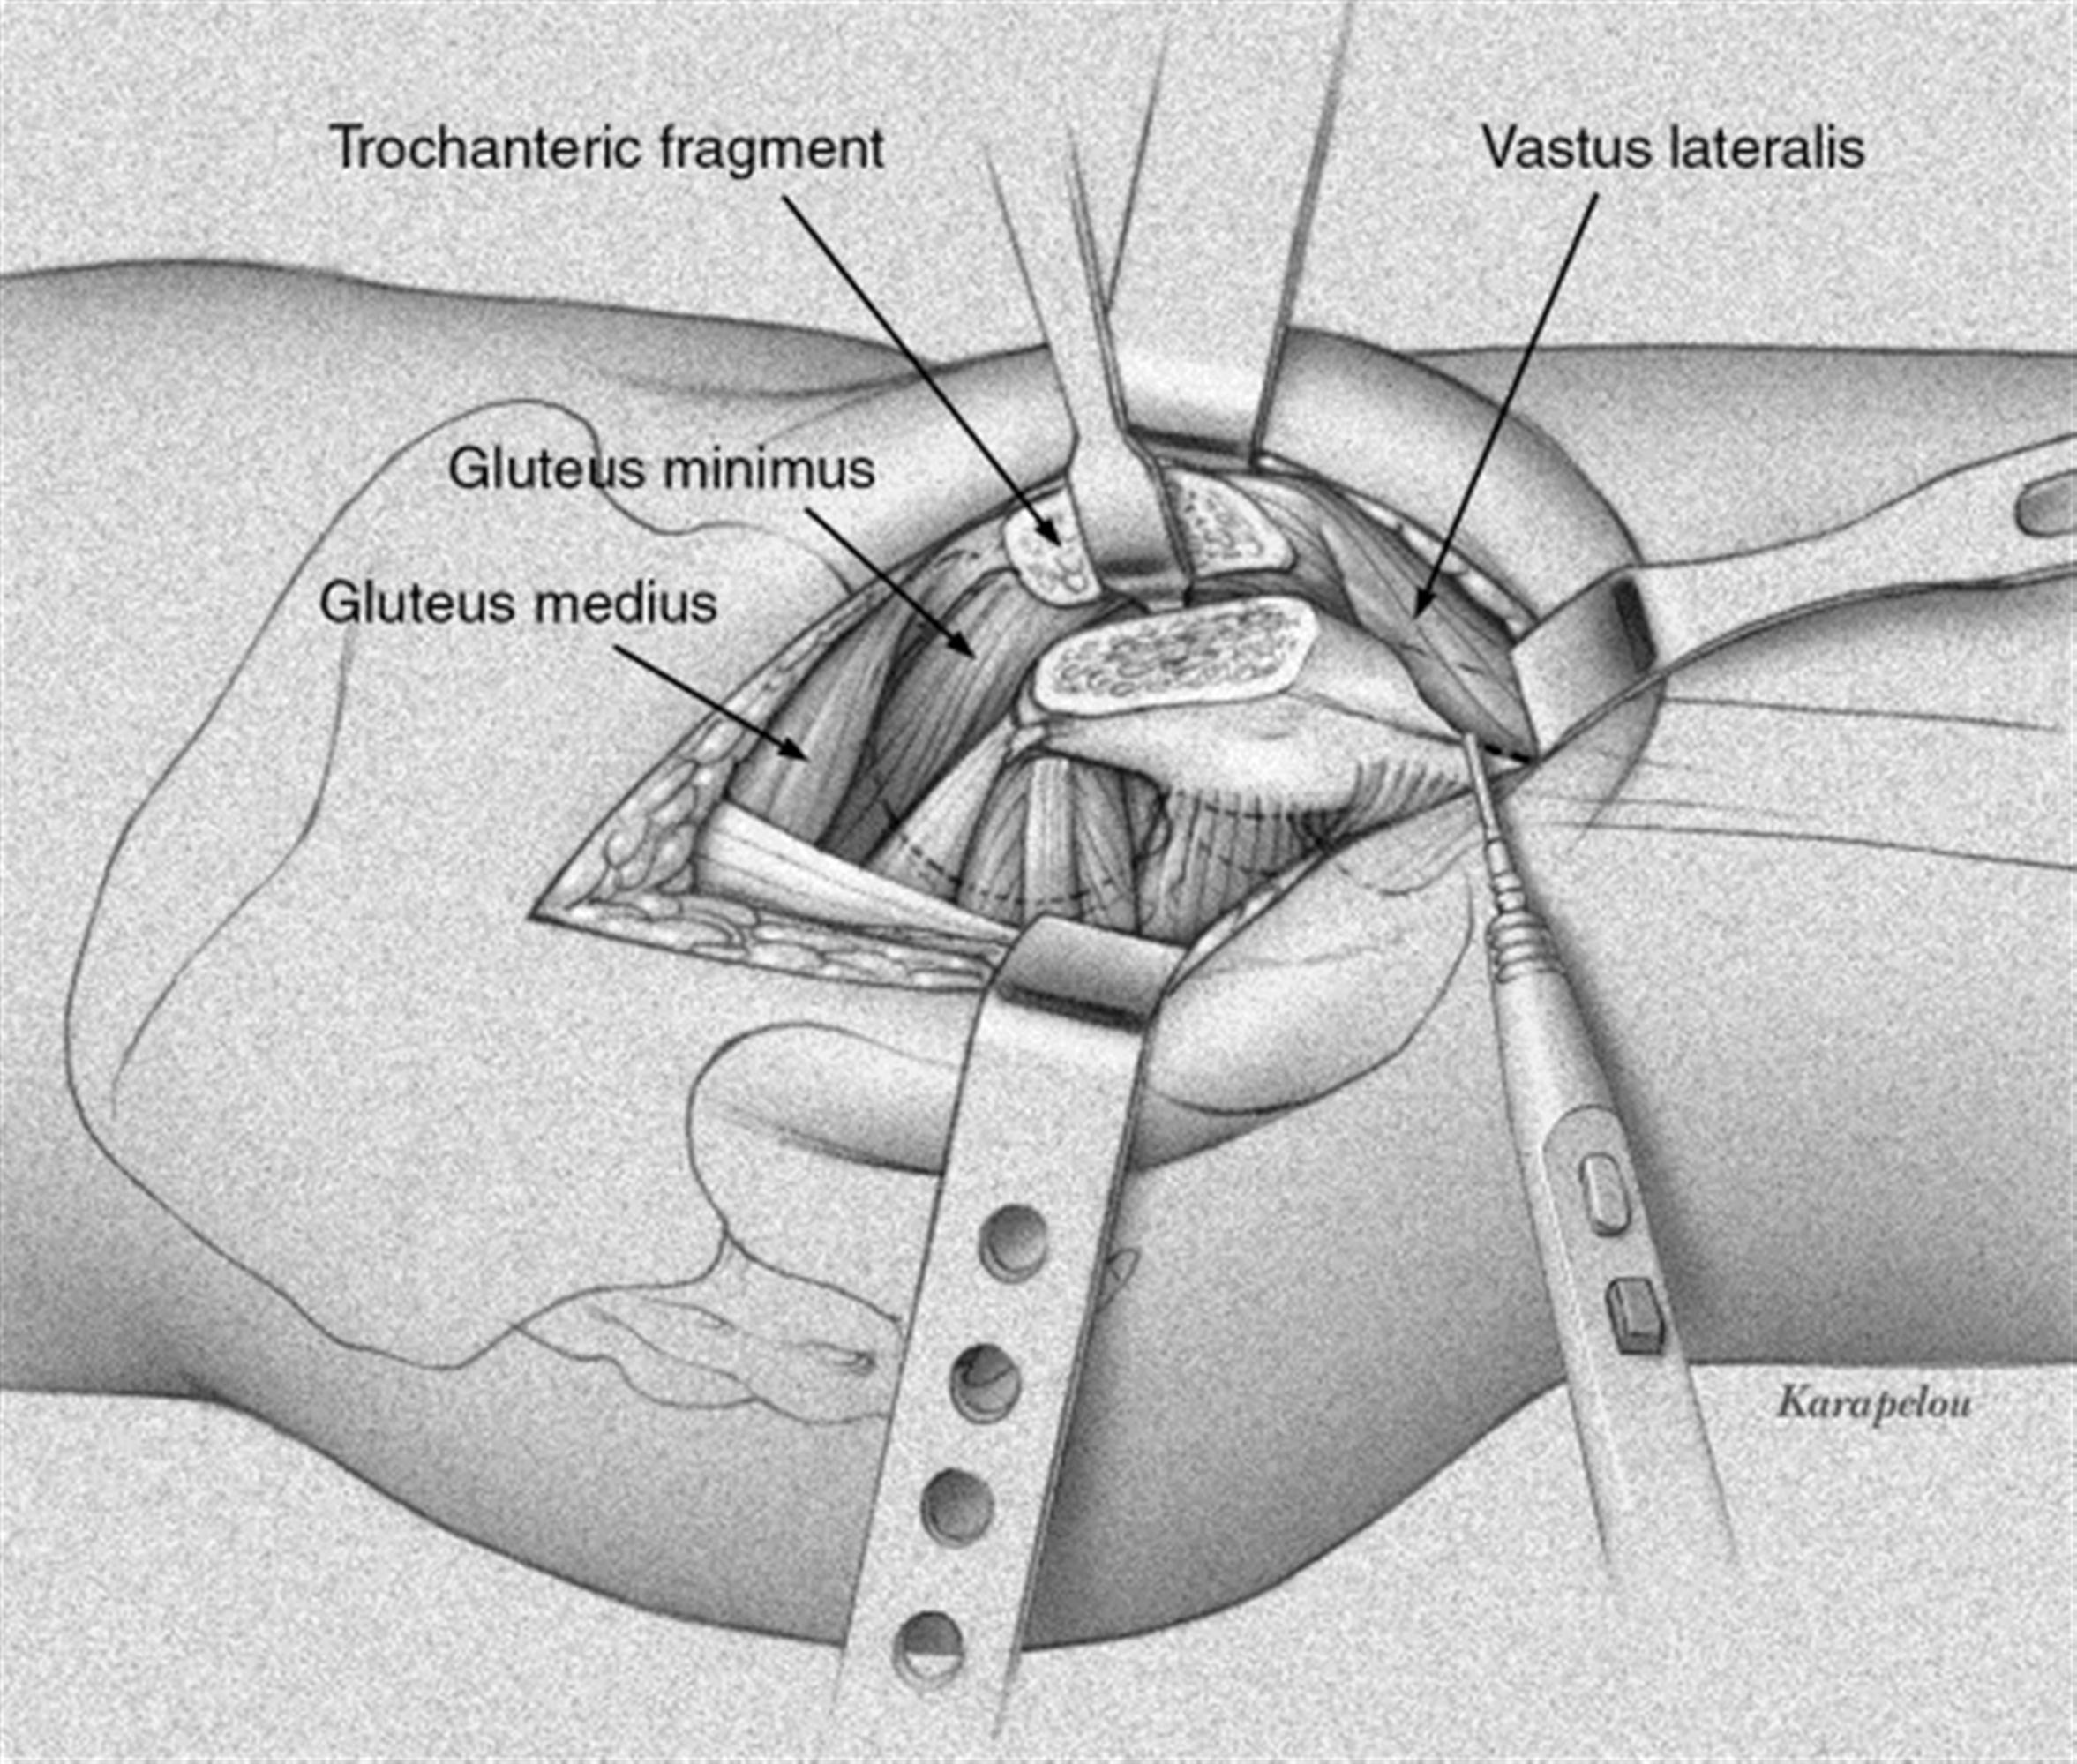 provides the best visualization of femoral head fracture and acetabular  posterior wall fracture